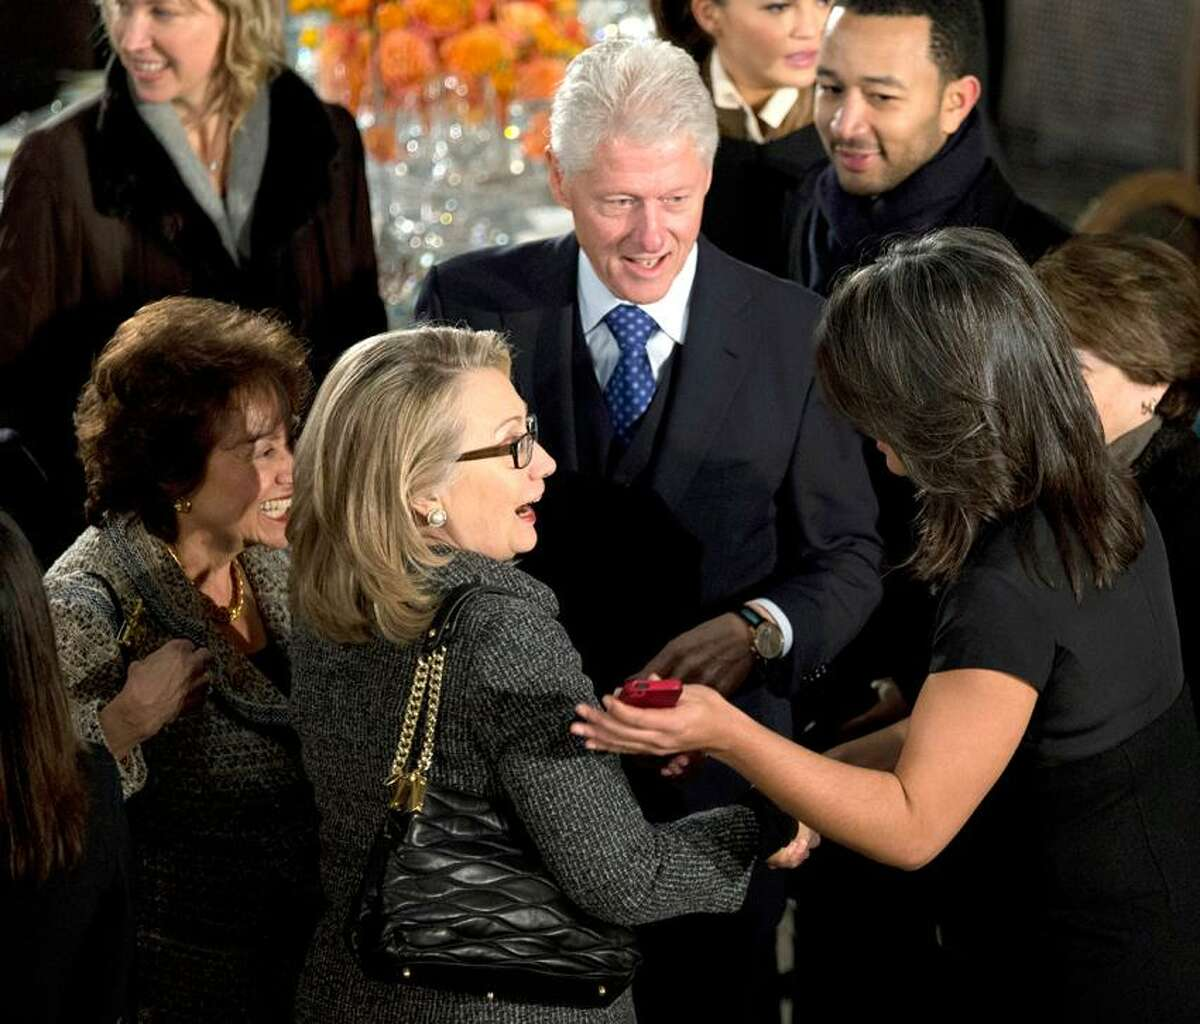 State Secretary Hillary Rodham Clinton, center, and former President Bill Clinton, greet guests at a luncheon after the ceremonial swearing-in of President Barack Obama and Vice President Joe Biden on Capitol Hill in Washington, Monday, Jan. 21, 2013. (AP Photo/Manuel Balce Ceneta)